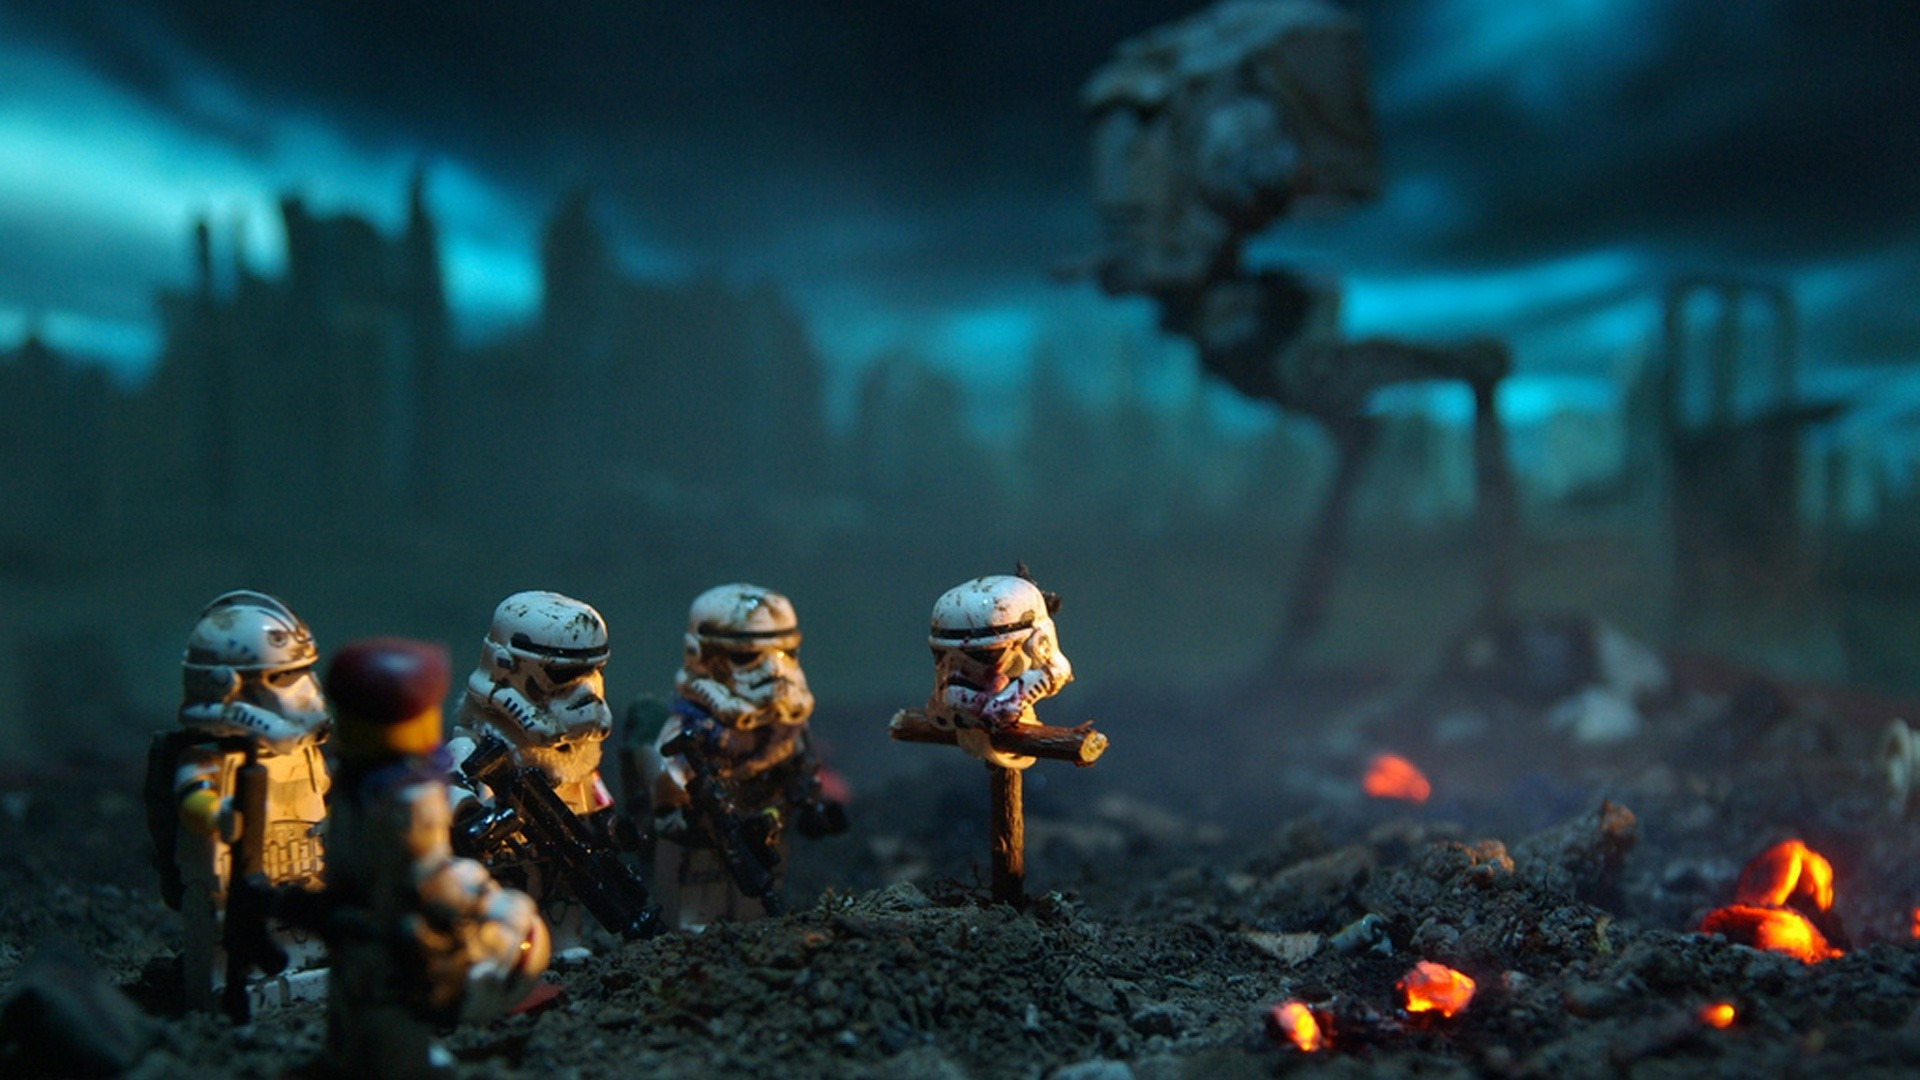 Star Wars Lego Cool Pictures HD Wallpaper Star Wars Lego Cool Pictures 1920x1080